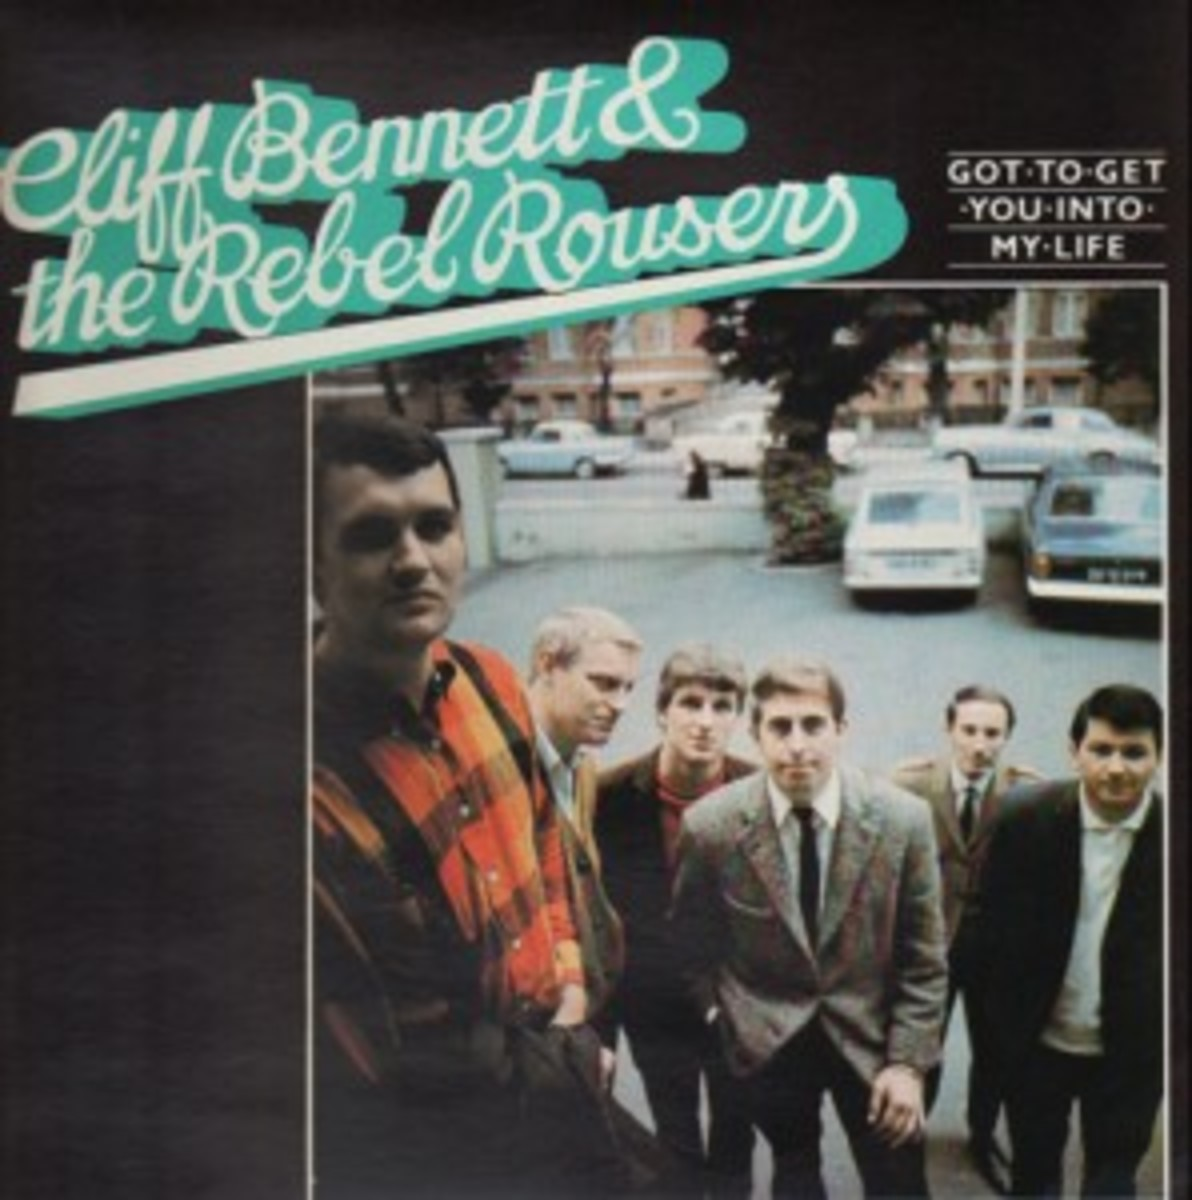 Cliff Bennett and The Rebel Rousers